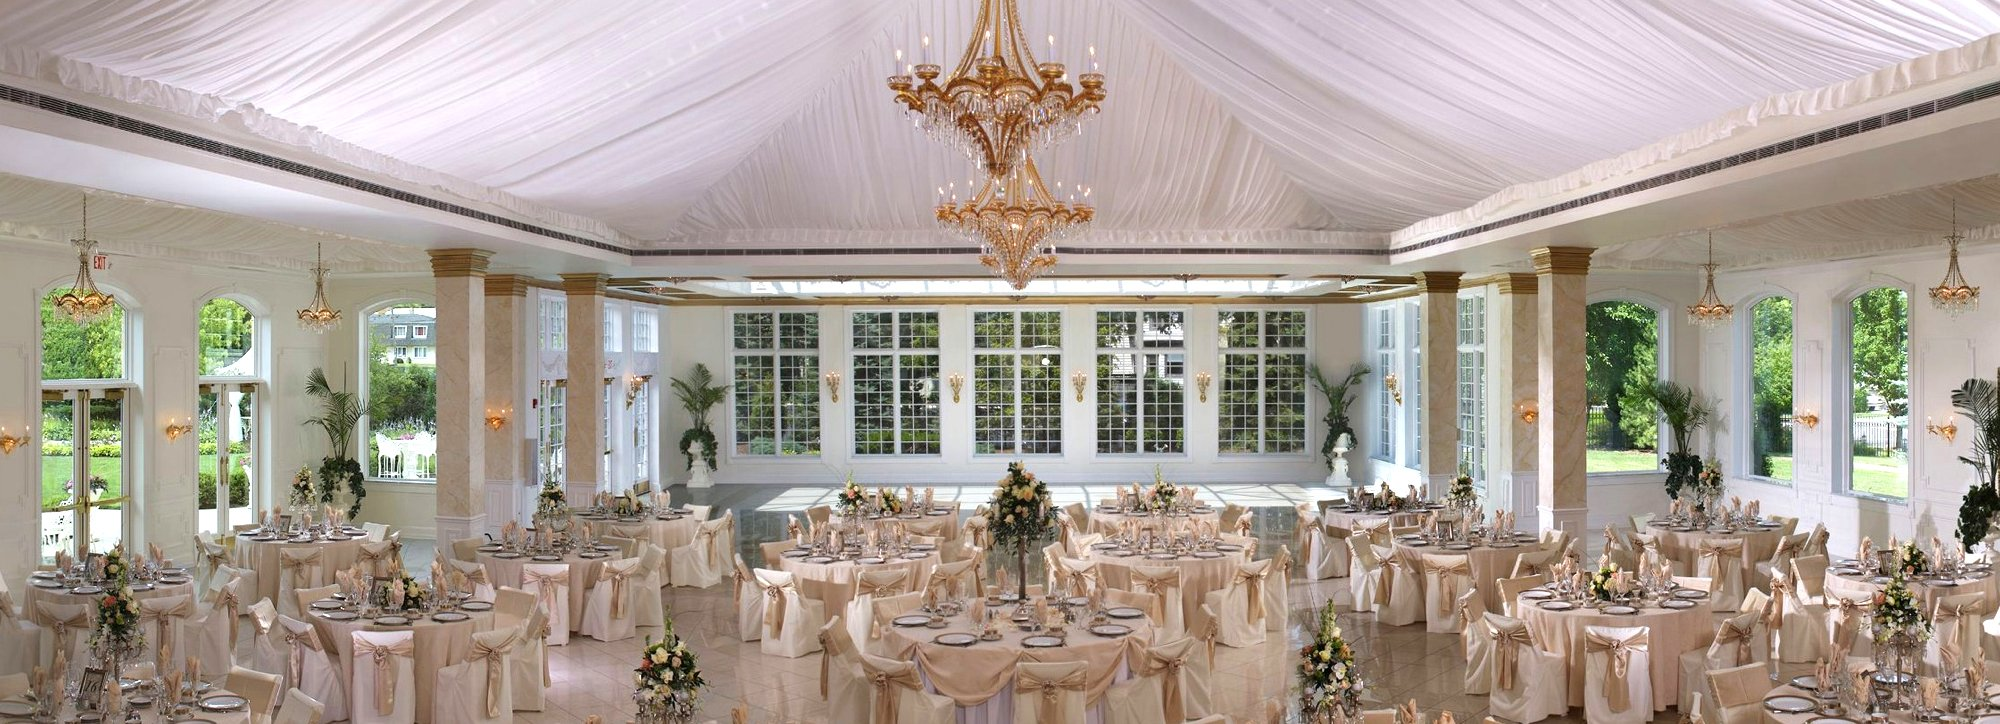 Great Wedding Venue Near Chicago: Wedding Venues Chicago